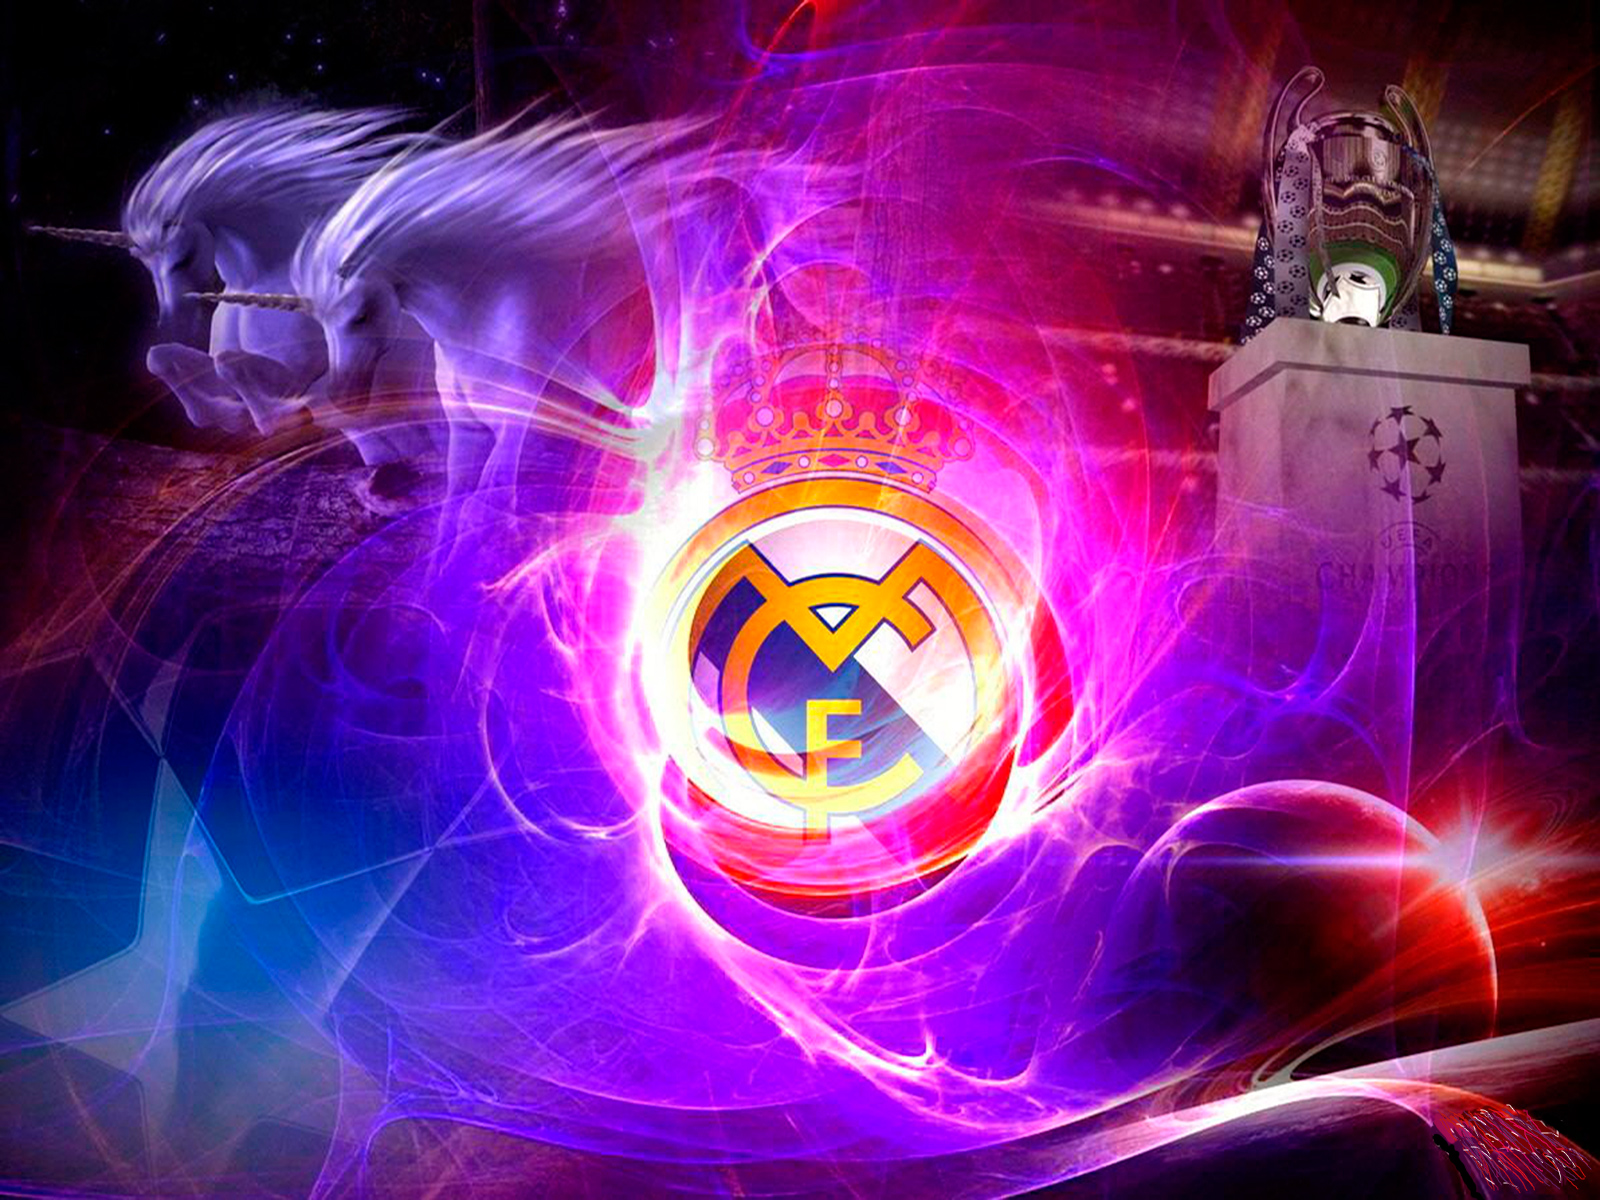 wallpaper hd real madrid y cibeles